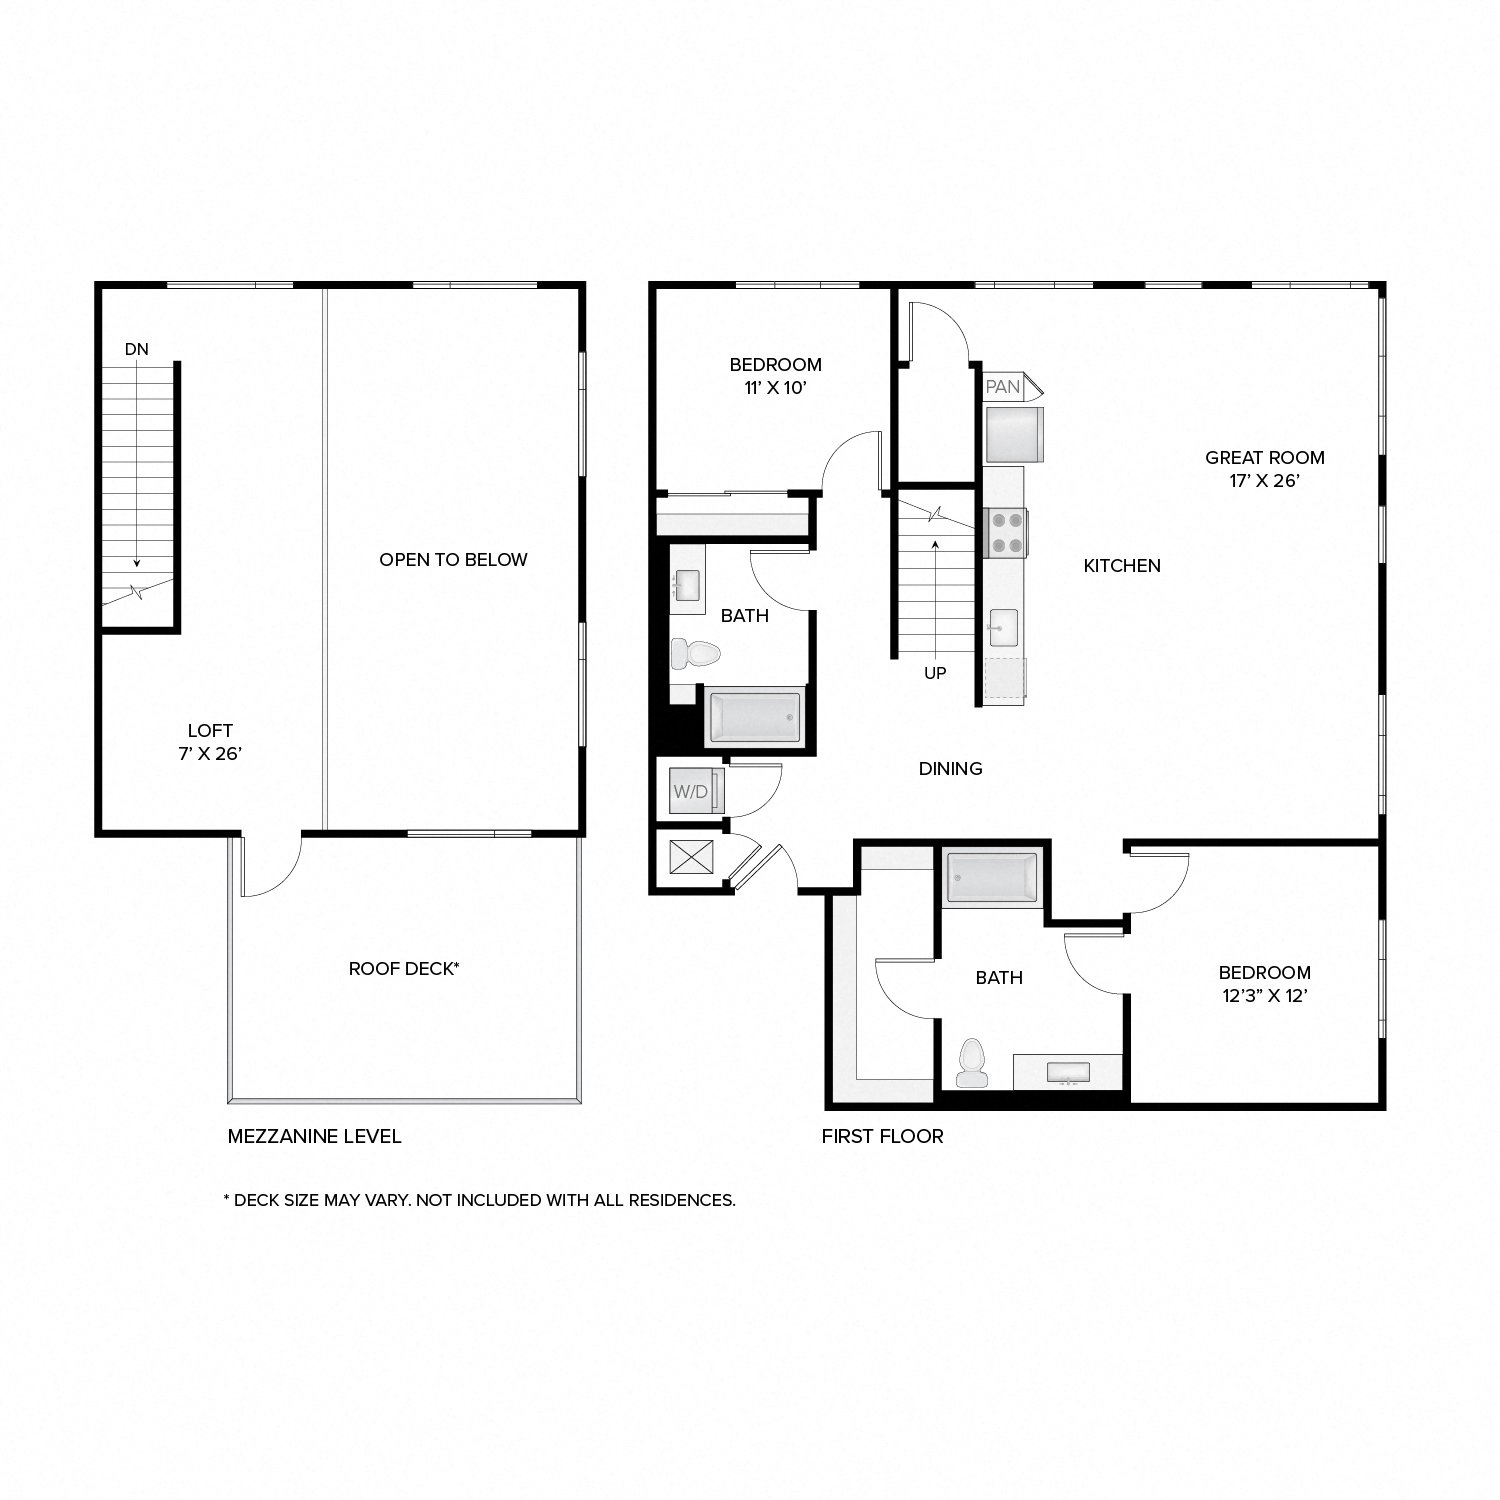 Diagram of the Washington Deluxe Loft floor plan. Two bedrooms, two bathrooms, a loft, an open kitchen and living area, a washer dryer, and in select residences, a deck.